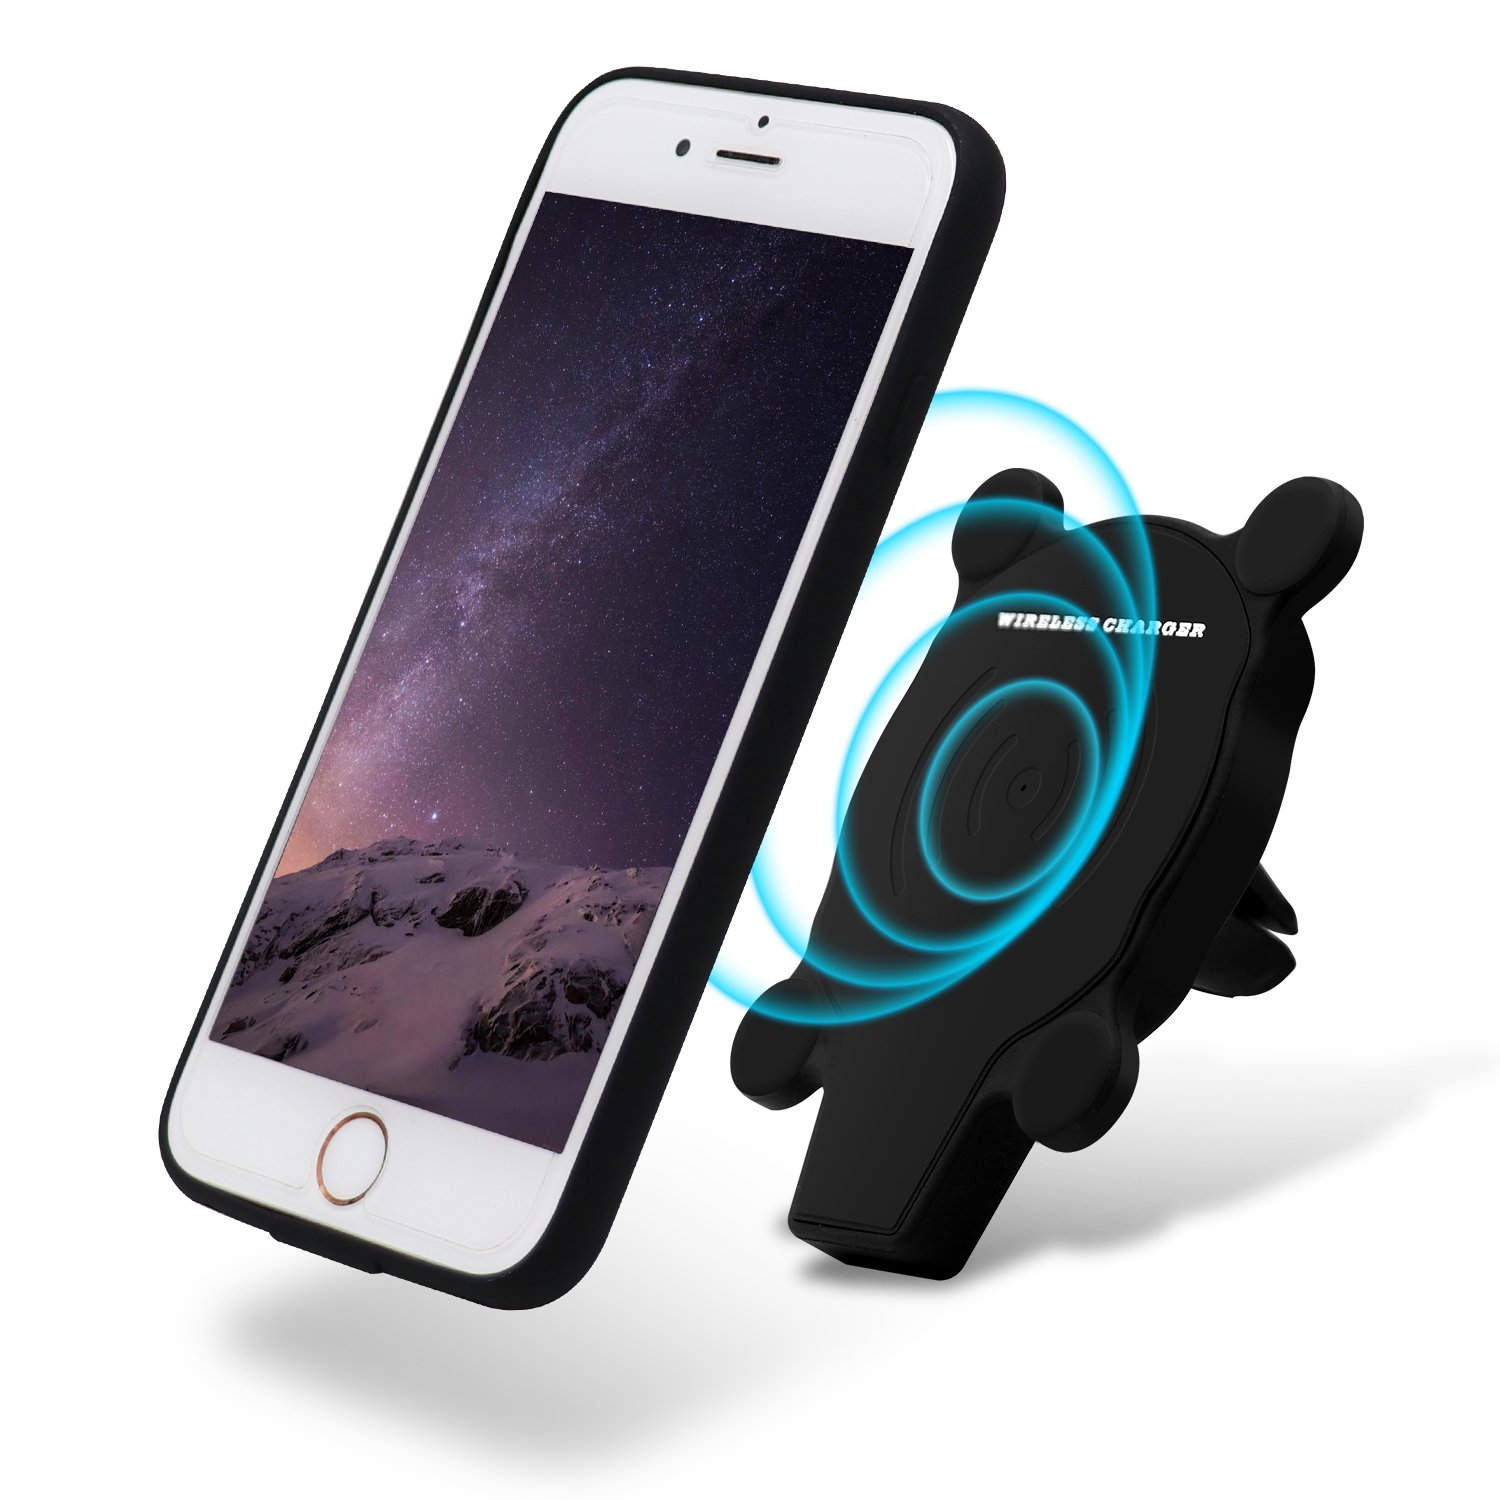 PHILWIN Fast Wireless Car Charger, Magnetic Car Mount Air Vent Phone Holder Cradle with Phone Case for iPhone 6 / 6s / 7 (360°Rotate Wireless Charger & Phone Case) (for iphone 6/6s/7)